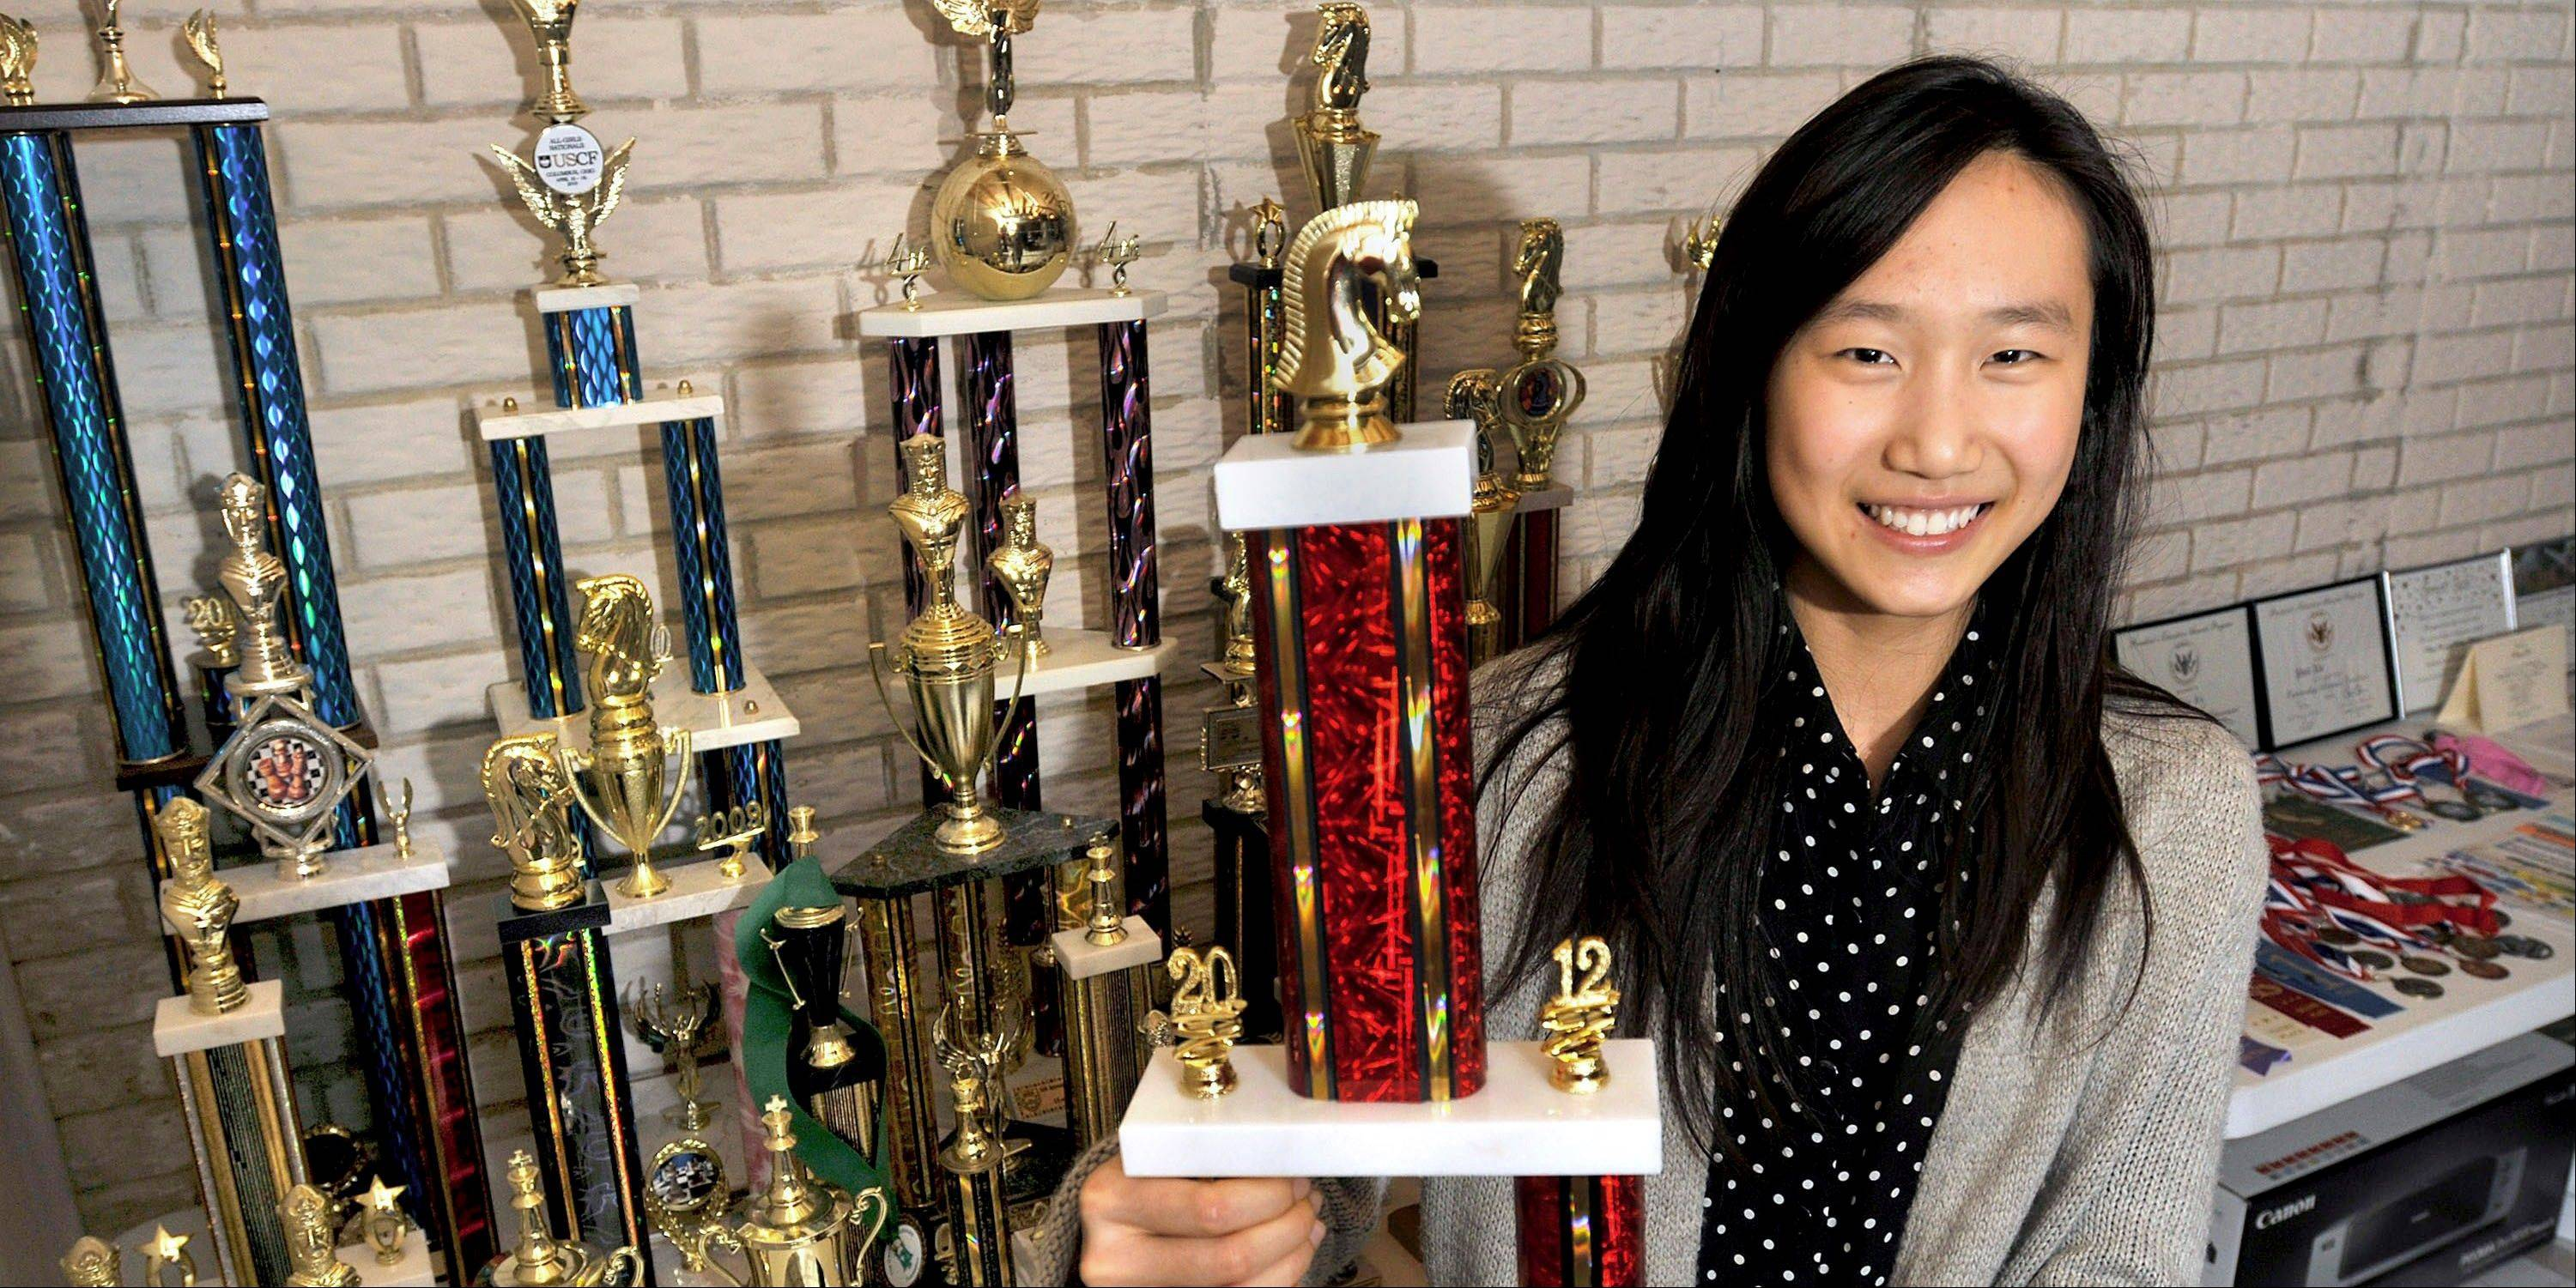 Urbana High School sophomore Yue �Penny� Xu, 16, surrounded by a table full of chess trophies, at her home in Urbana.